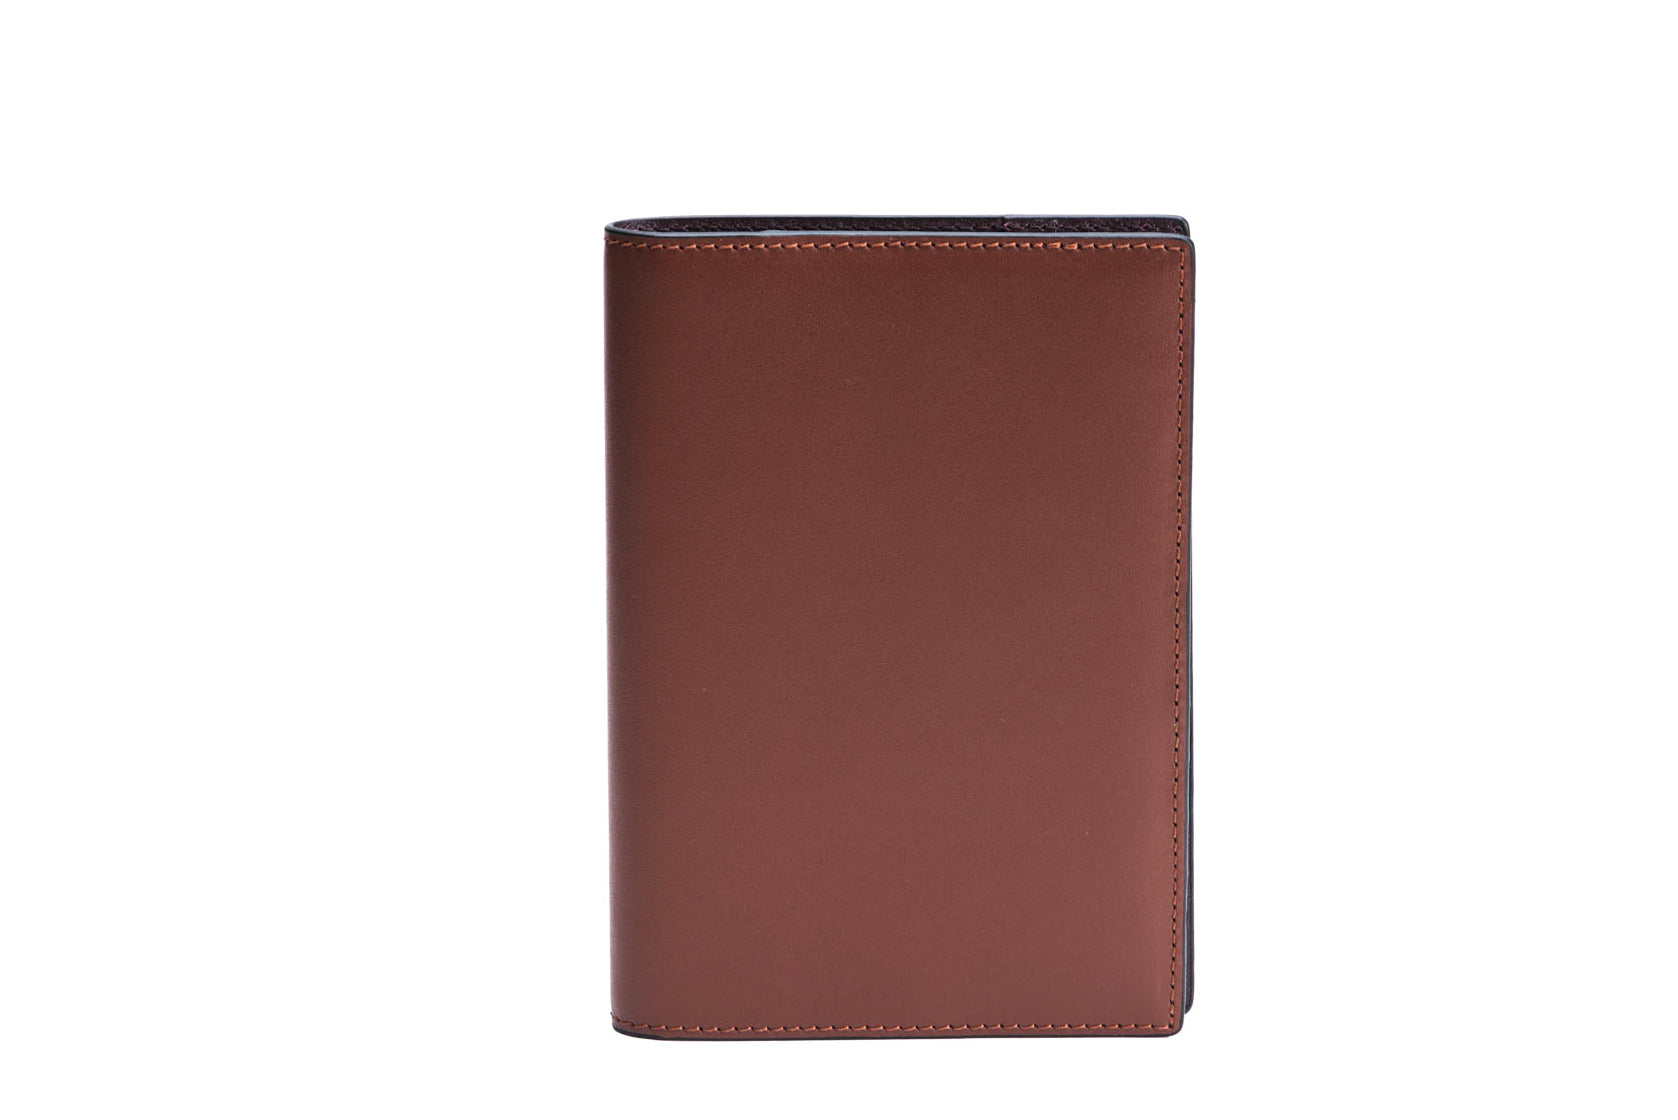 Specter VT1 Passport Sleeve | Travel Leather Accessories